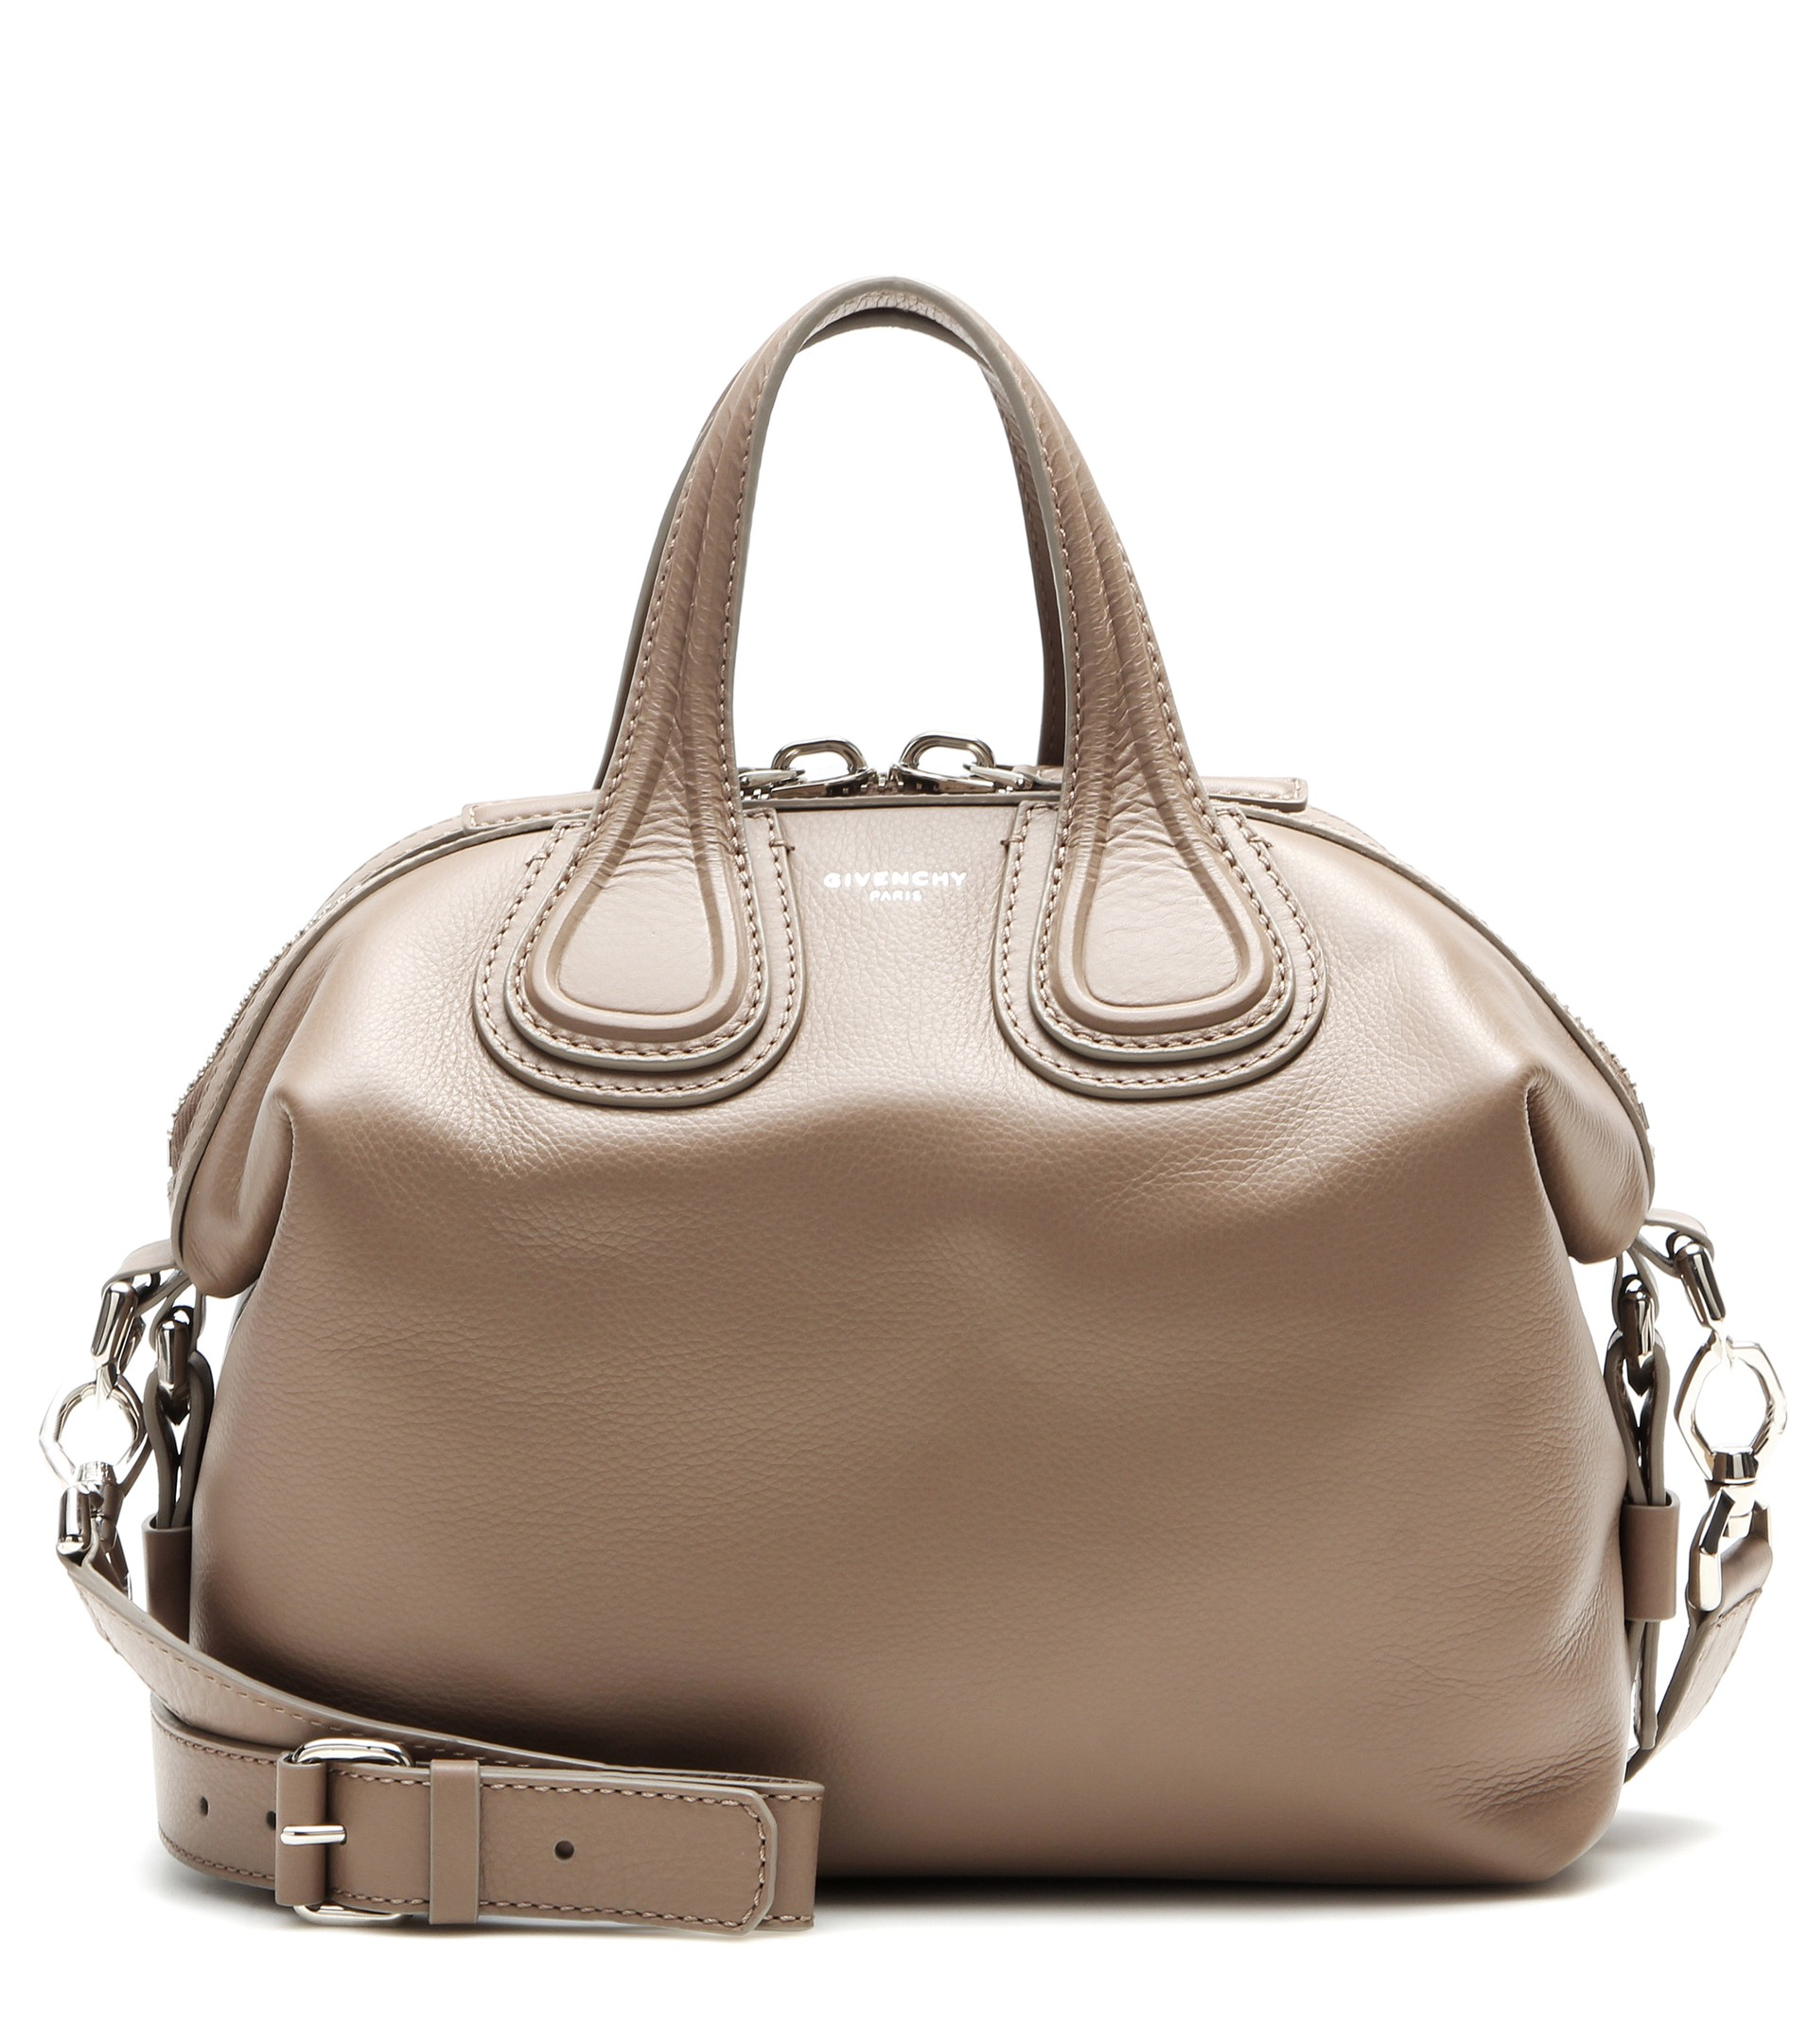 59beb54b8e Givenchy Nightingale Small Leather Tote in Natural - Lyst